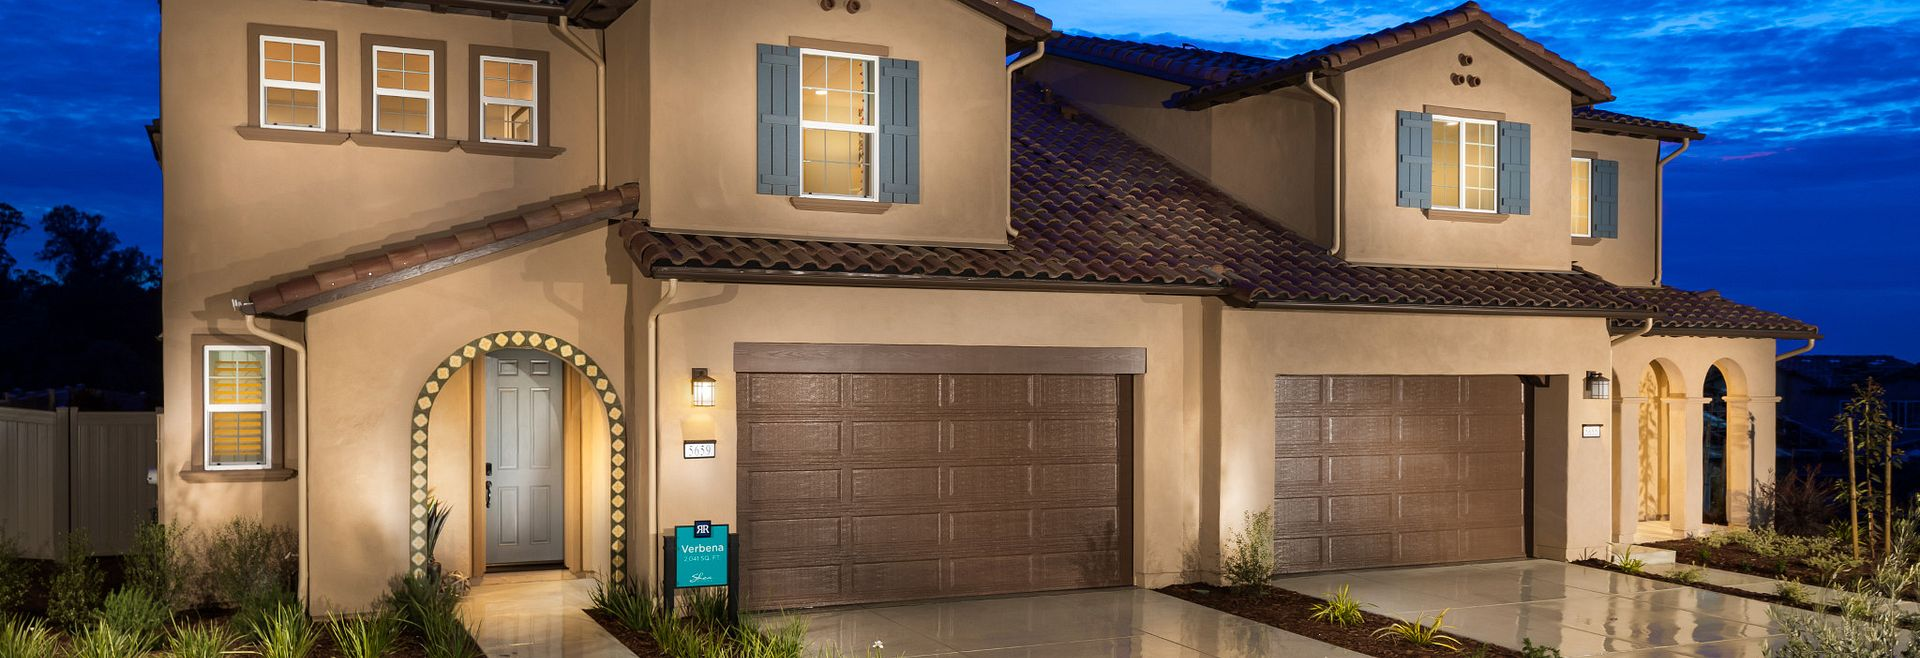 Rice Ranch by Shea Homes in Orcutt, CA